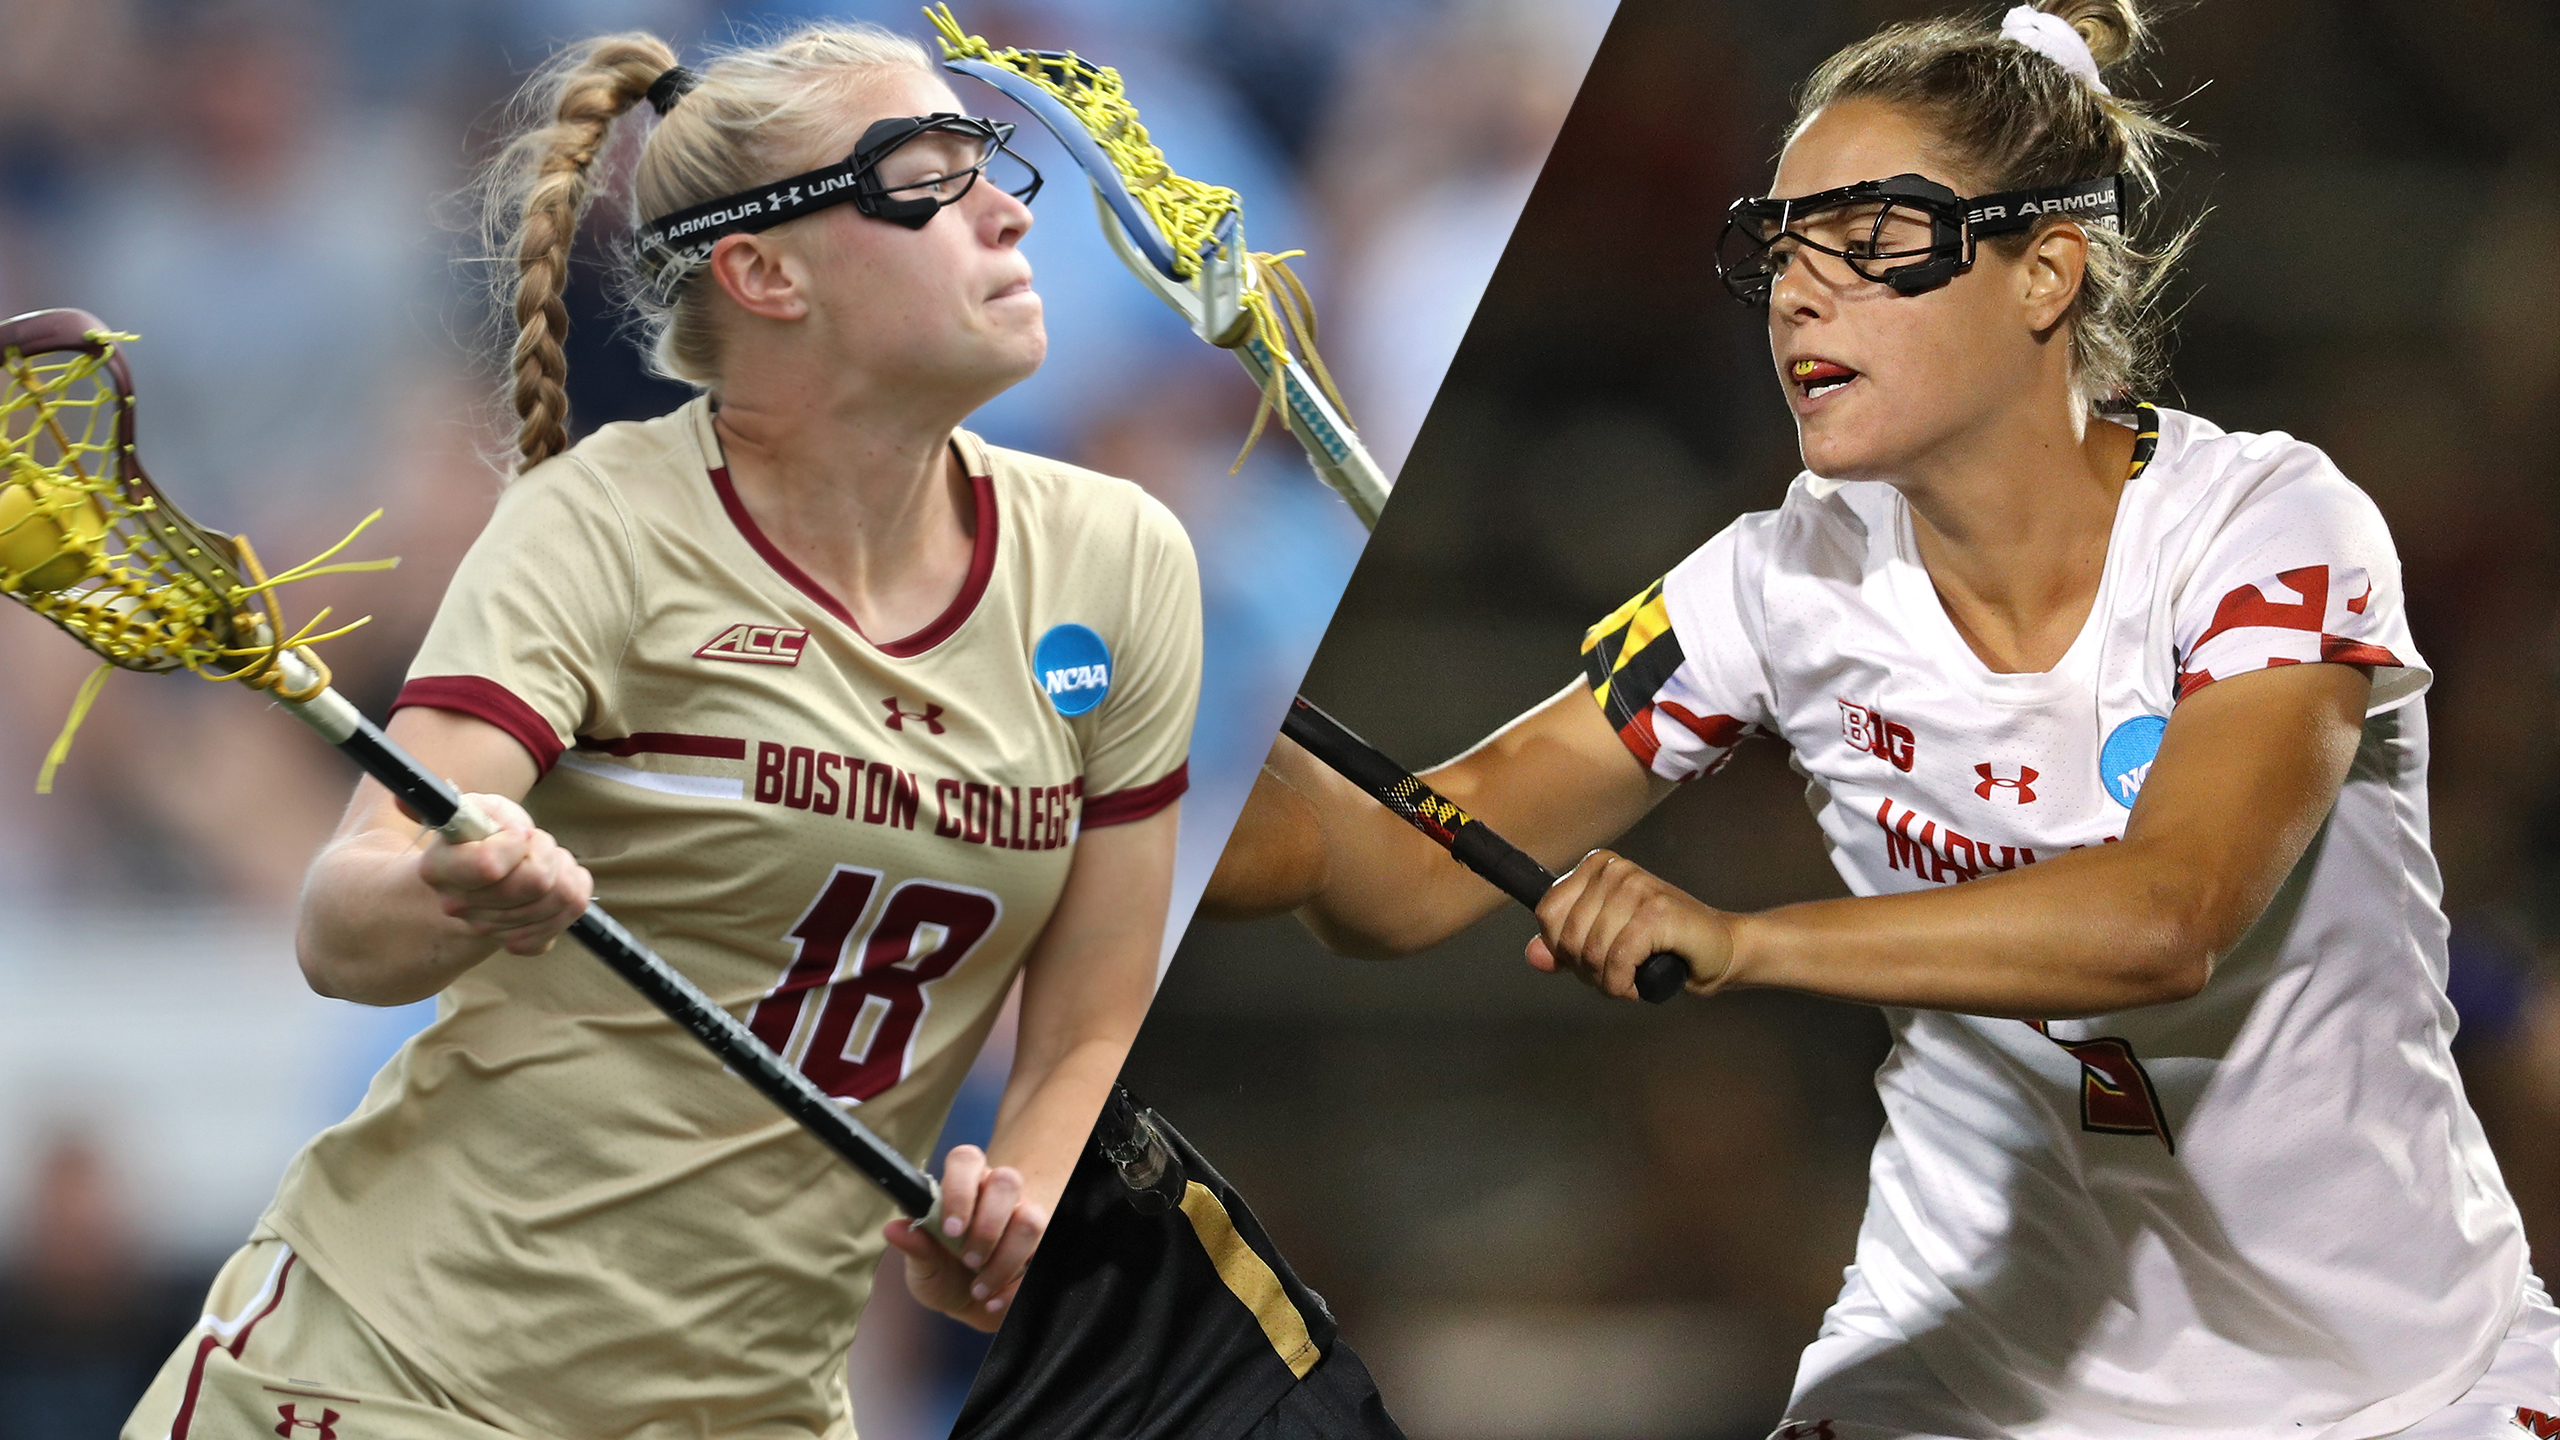 #2 Boston College vs. #1 Maryland (Championship) (re-air)